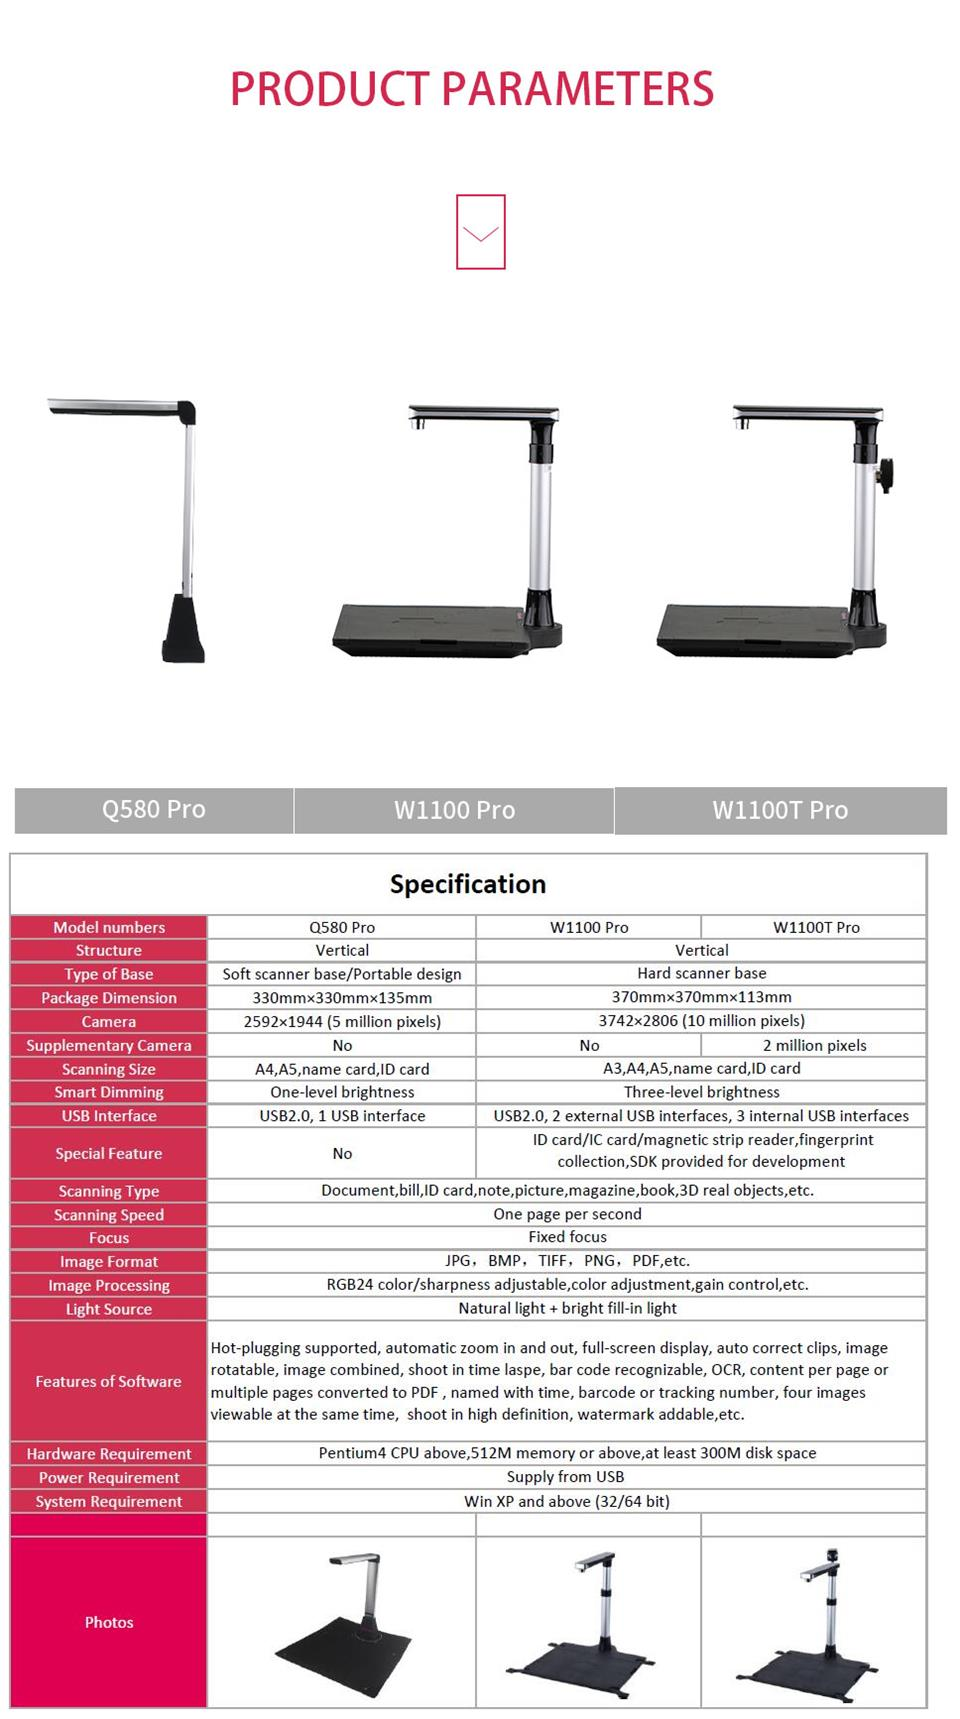 CimFAX W1100 Pro Document Camera Scanner 1000dpi HD 10 Million Pixels OCR  File Archive Scanner A3 A4 A5 Name Card ID Card Scanning